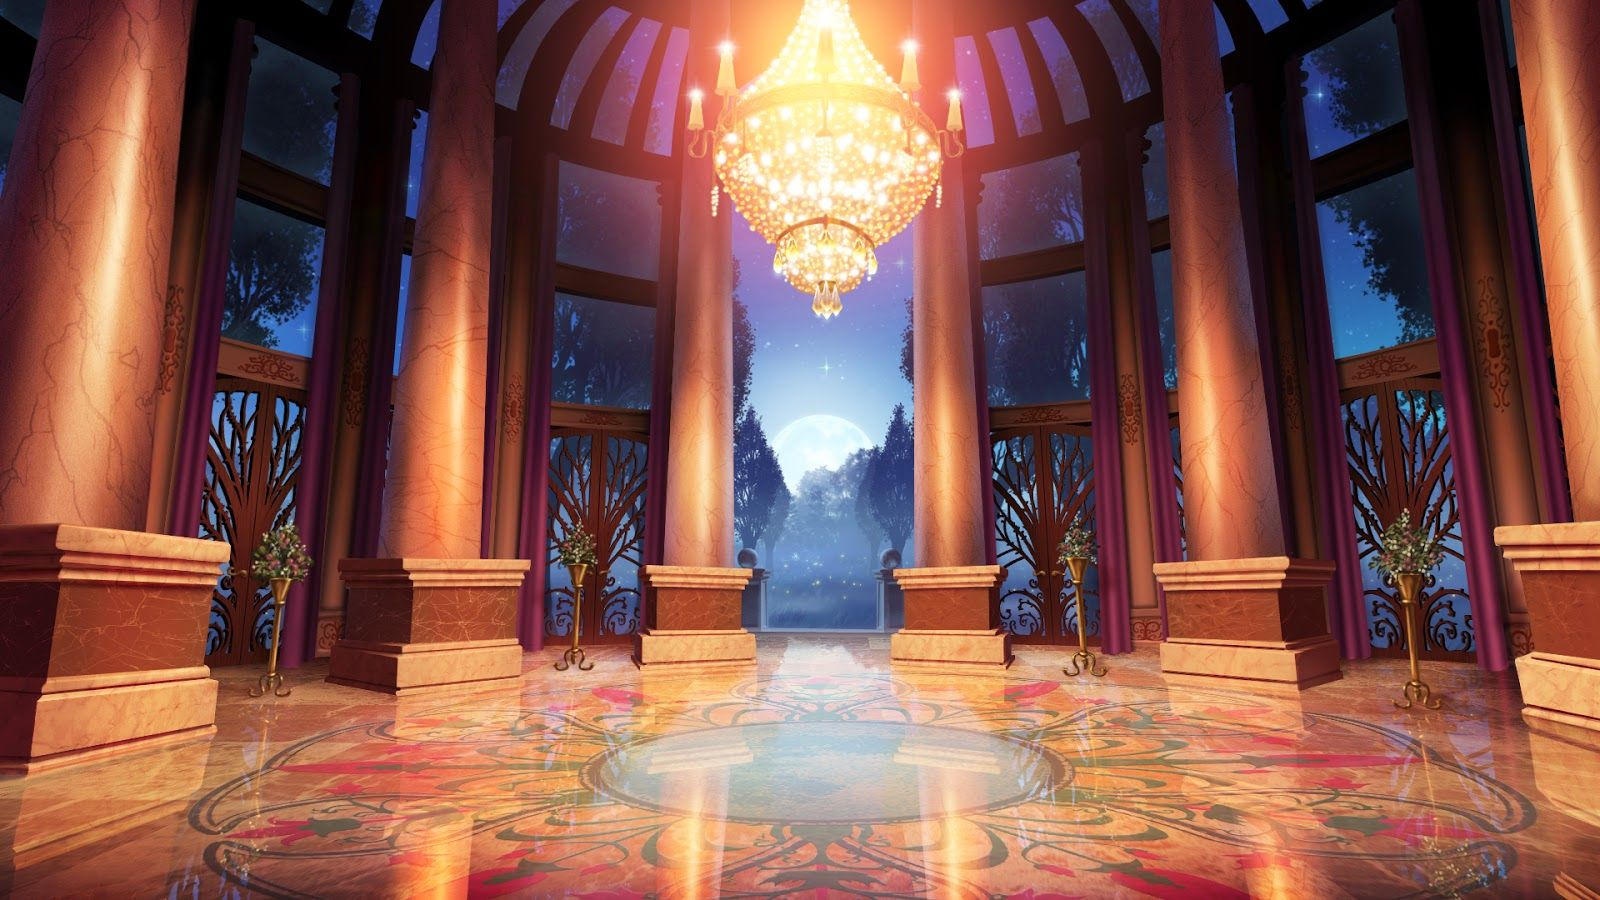 ballroom - Google Search | Game of Tiaras Throne Room | Pinterest | Throne room